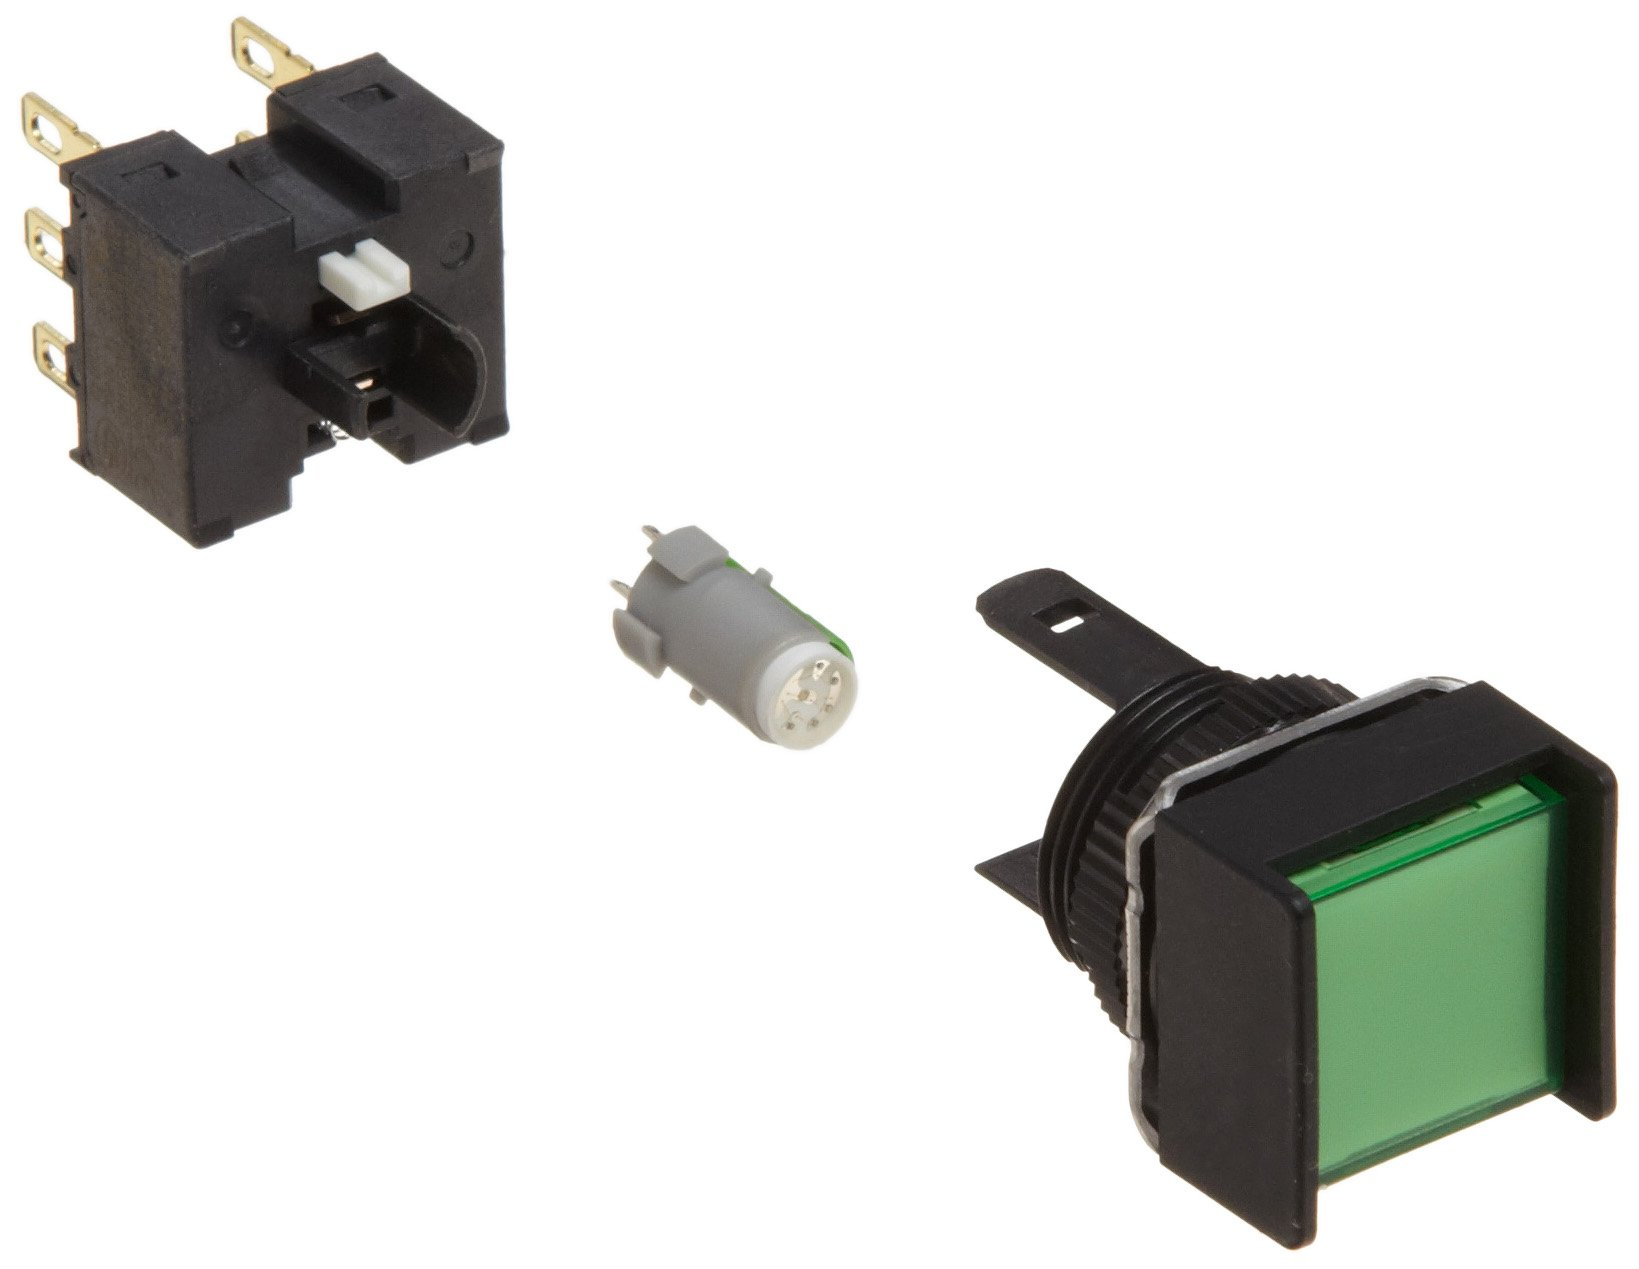 Omron A165L-AGA-24D-2 Two Way Guard Type Pushbutton and Switch, Solder Terminal, IP65 Oil-Resistant, 16mm Mounting Aperture, LED Lighted, Alternate Operation, Square, Green, 24 VDC Rated Voltage, Double Pole Double Throw Contacts